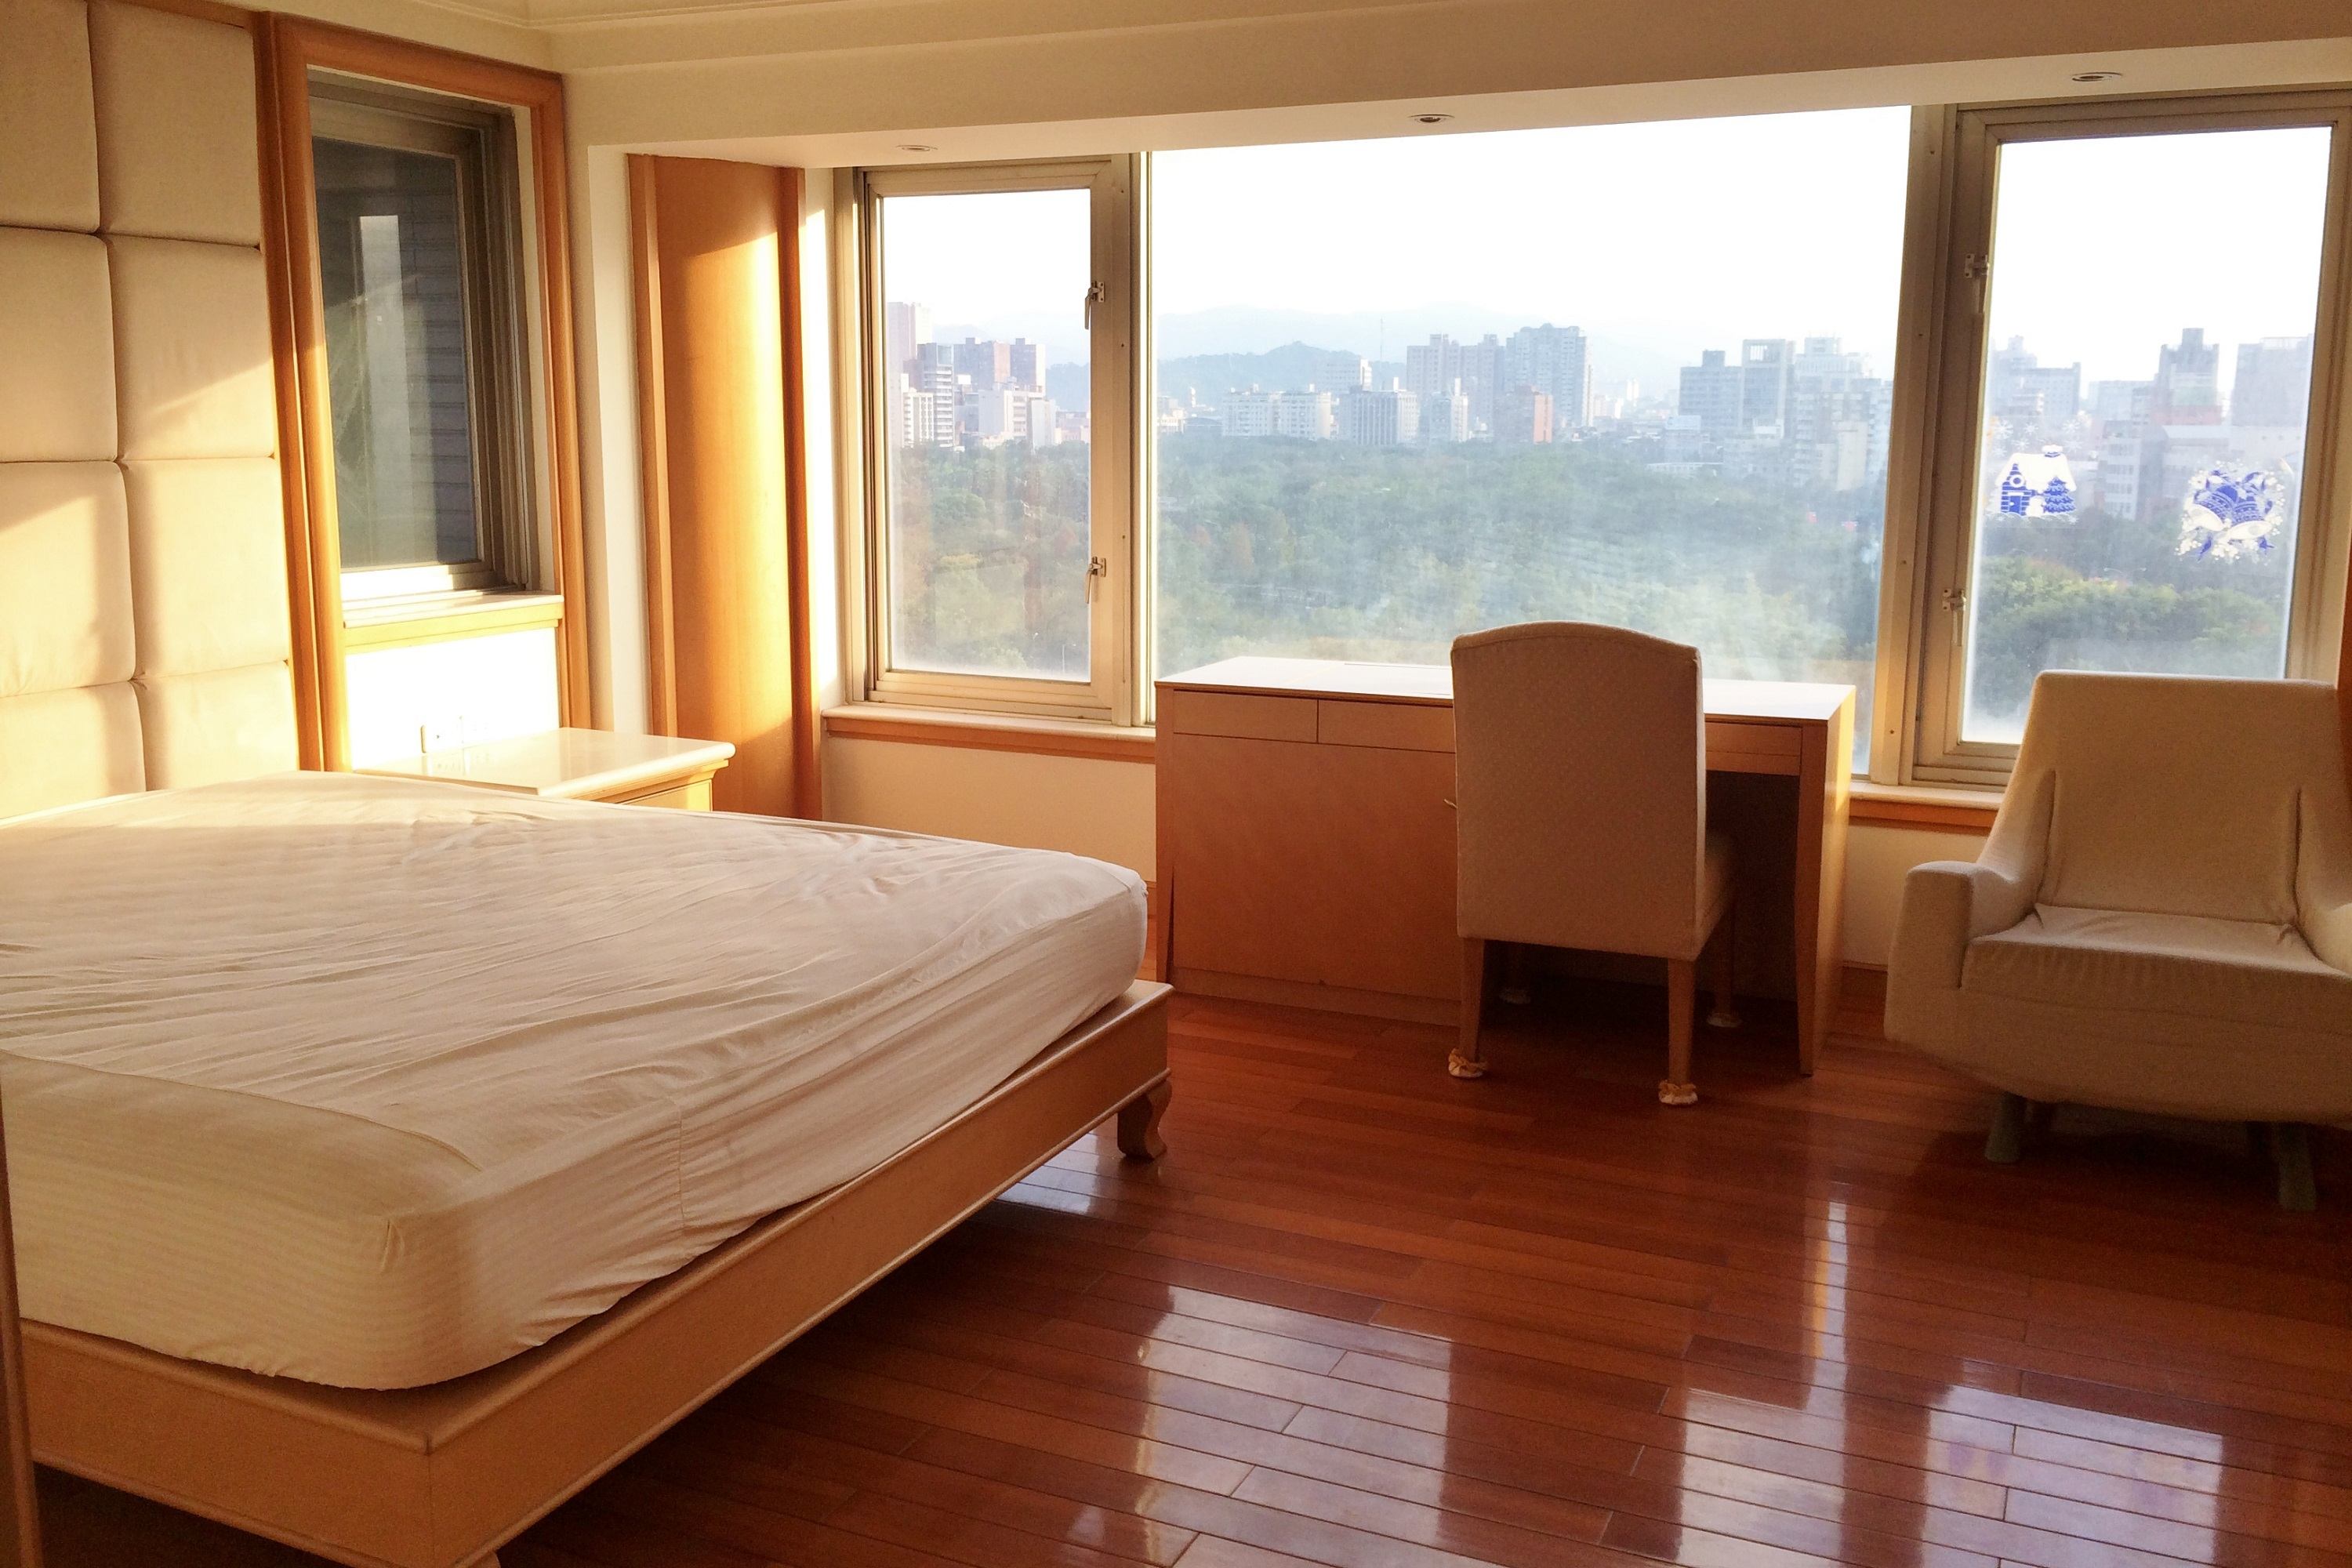 Condominium for Sale at Eiffel Court Taipei City, Taiwan